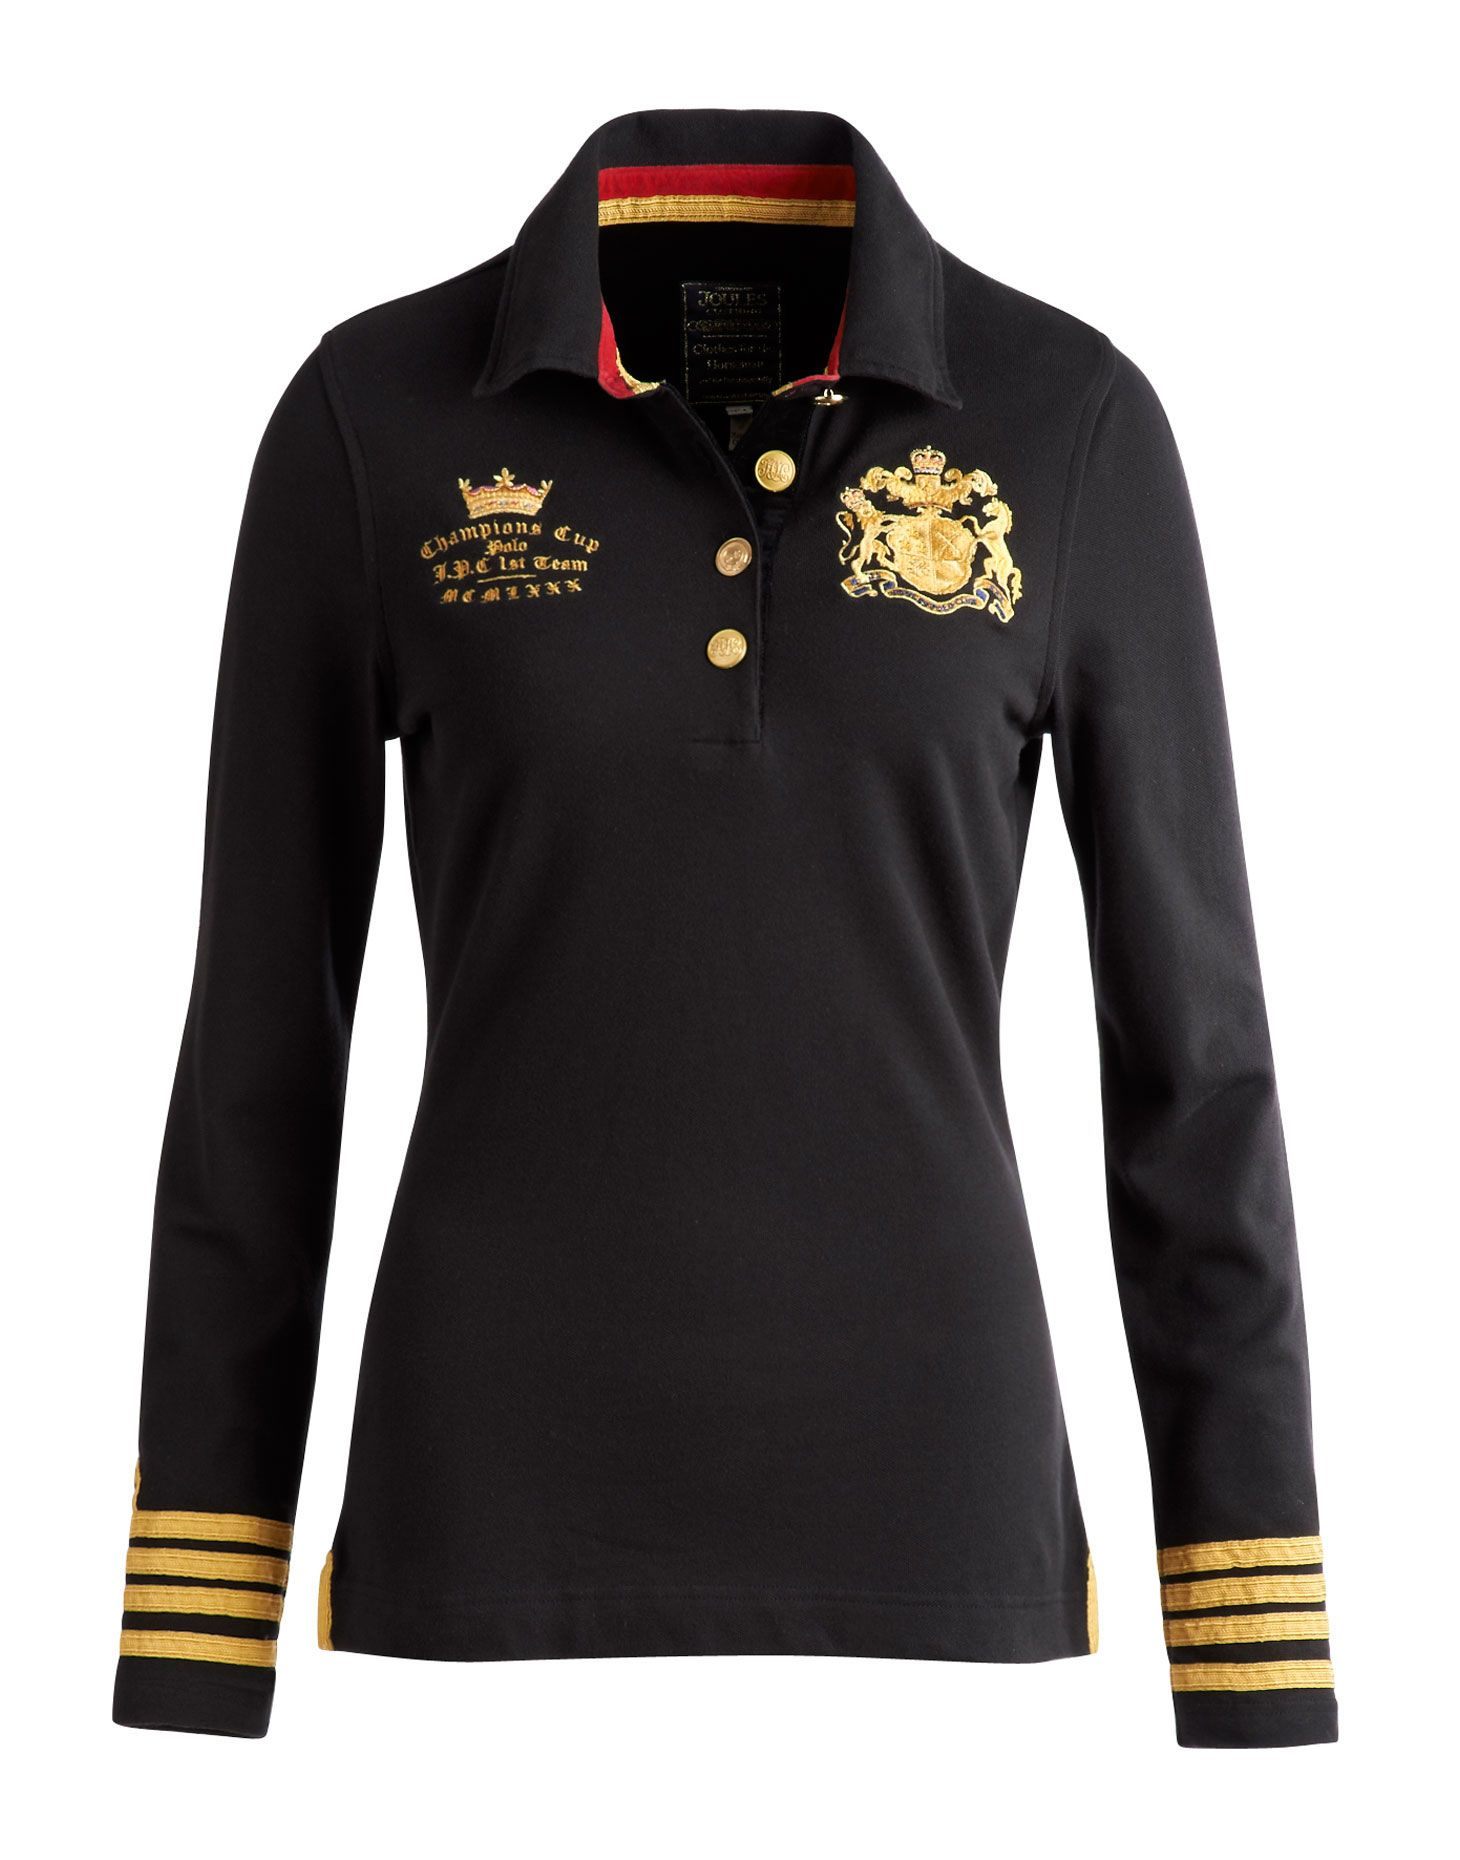 Joules Long Sleeve Polo Perfect For Spring Riding Stuff To Wear